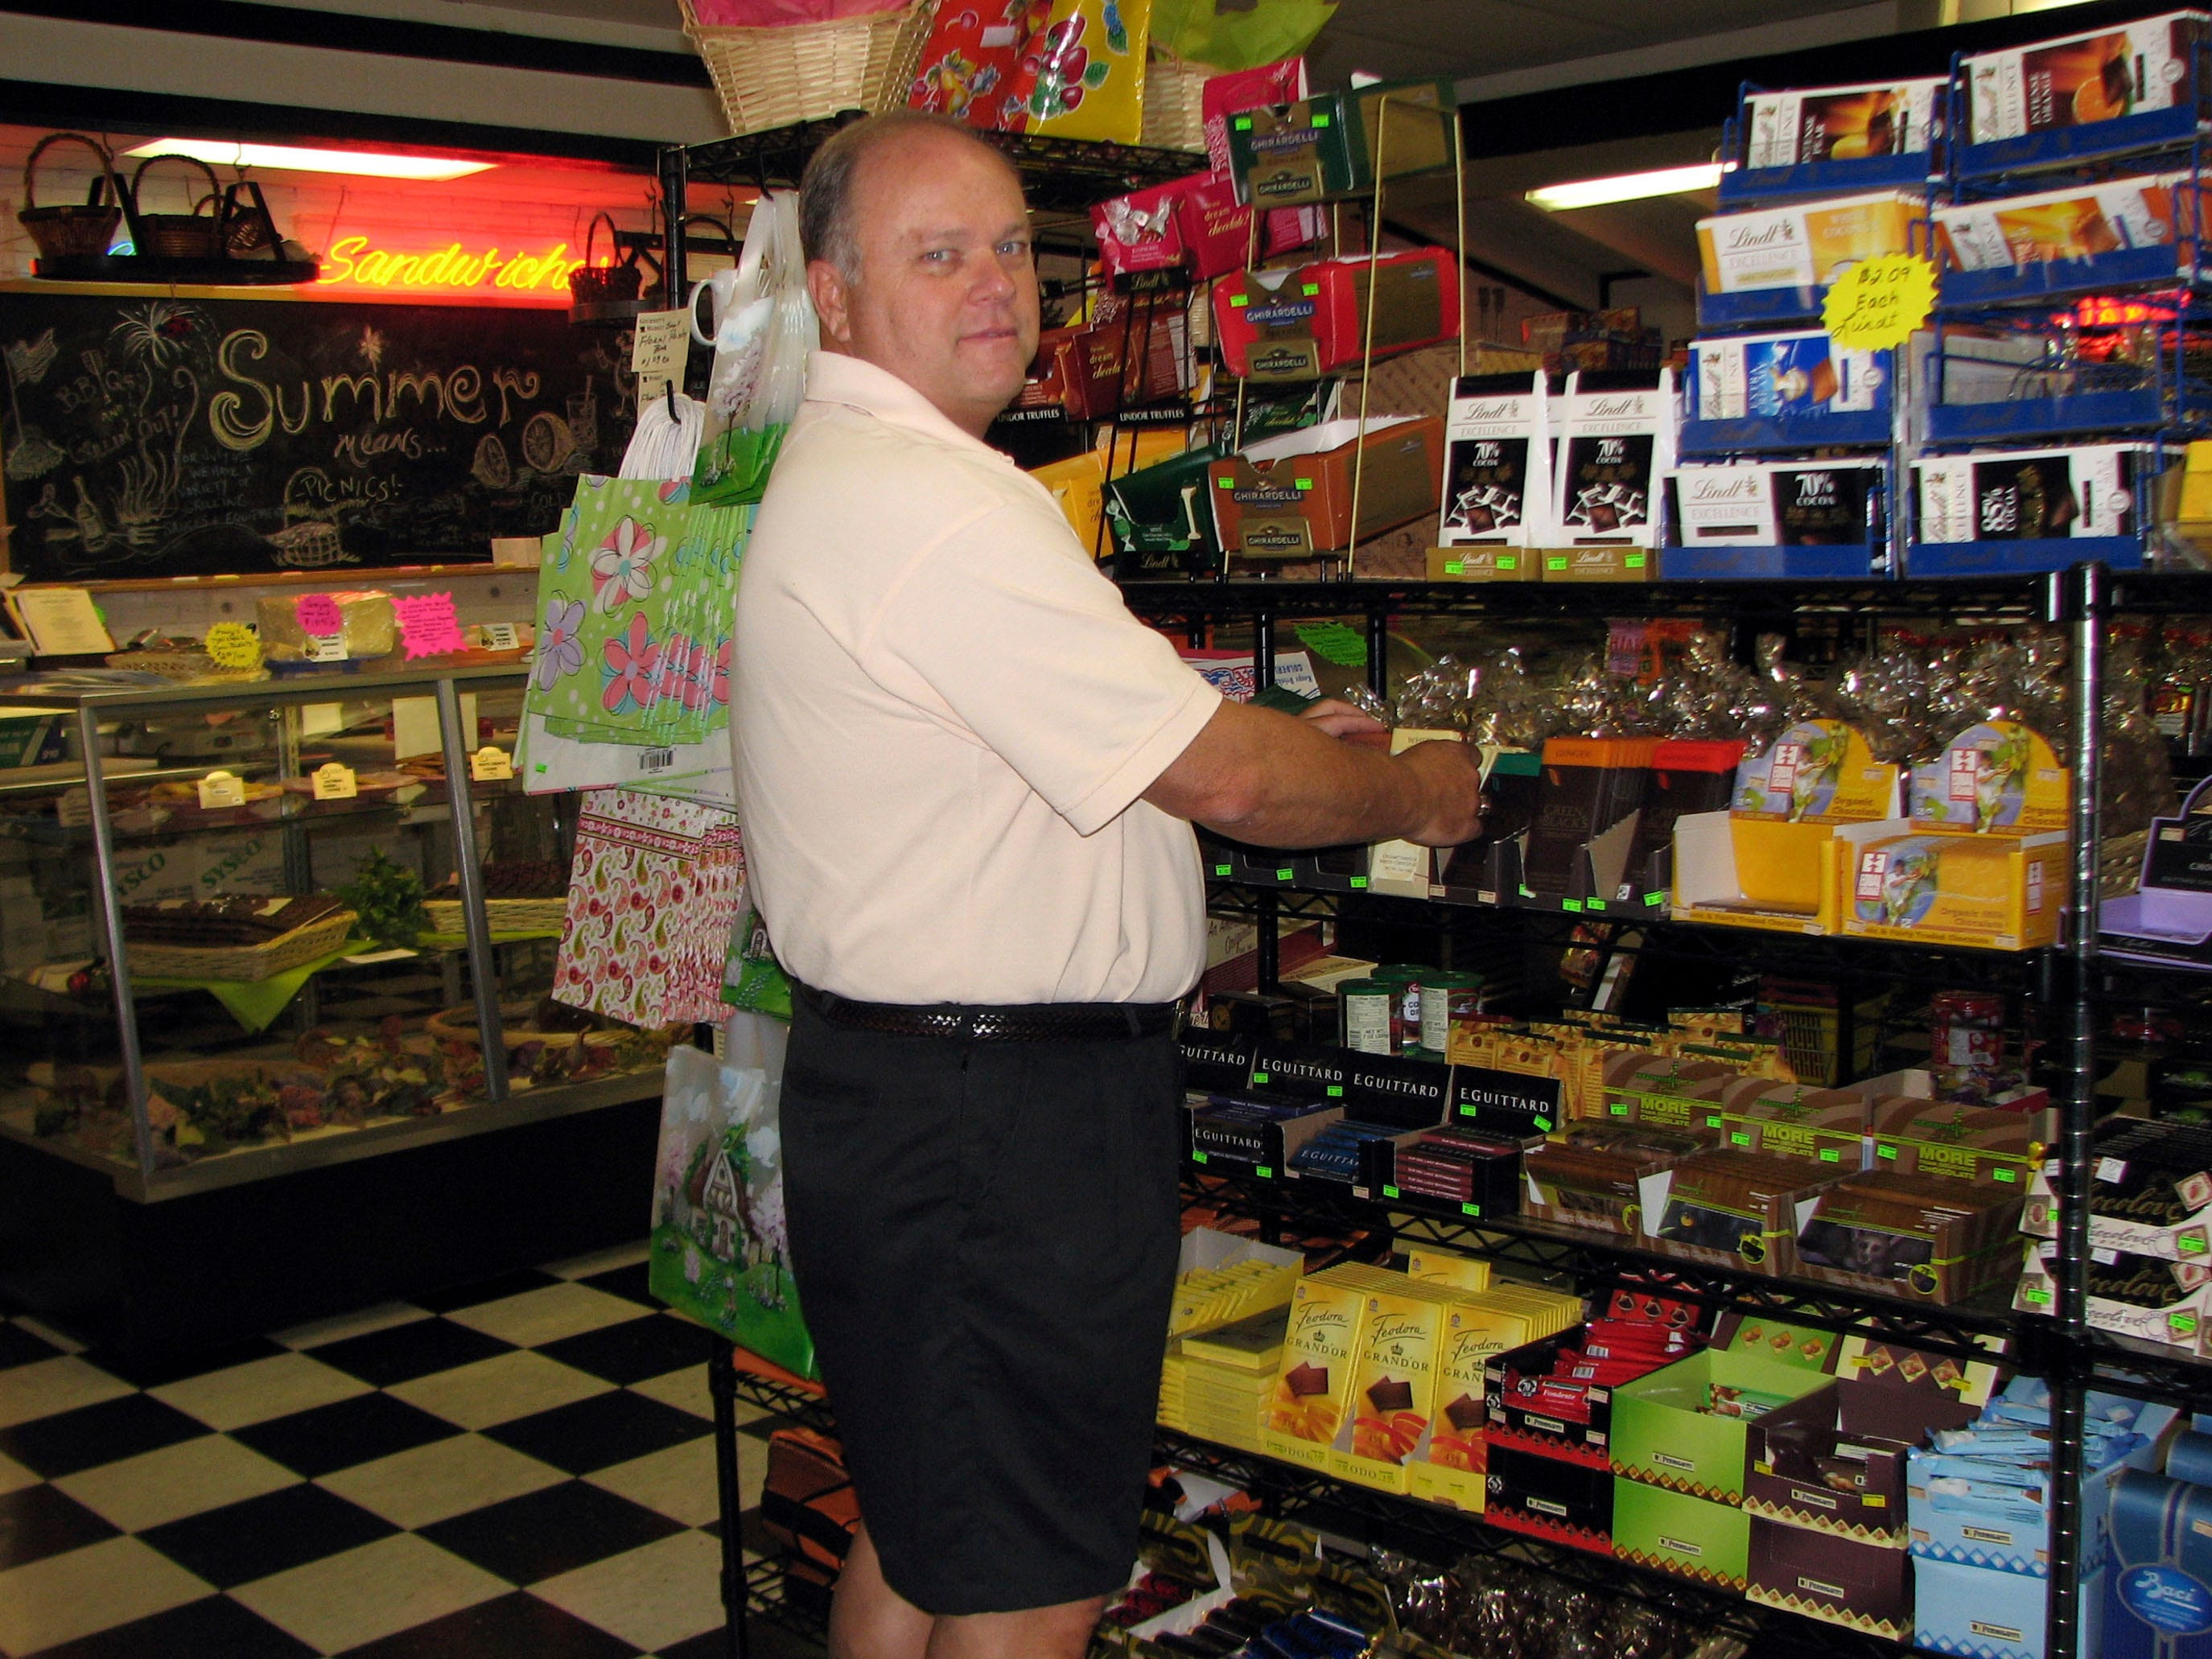 Manager Greg Locke shelves some of the 300 plus chocolate bars at Gourmet's Market in Bearden. The bakery cases and cafe are in the background in 2006.